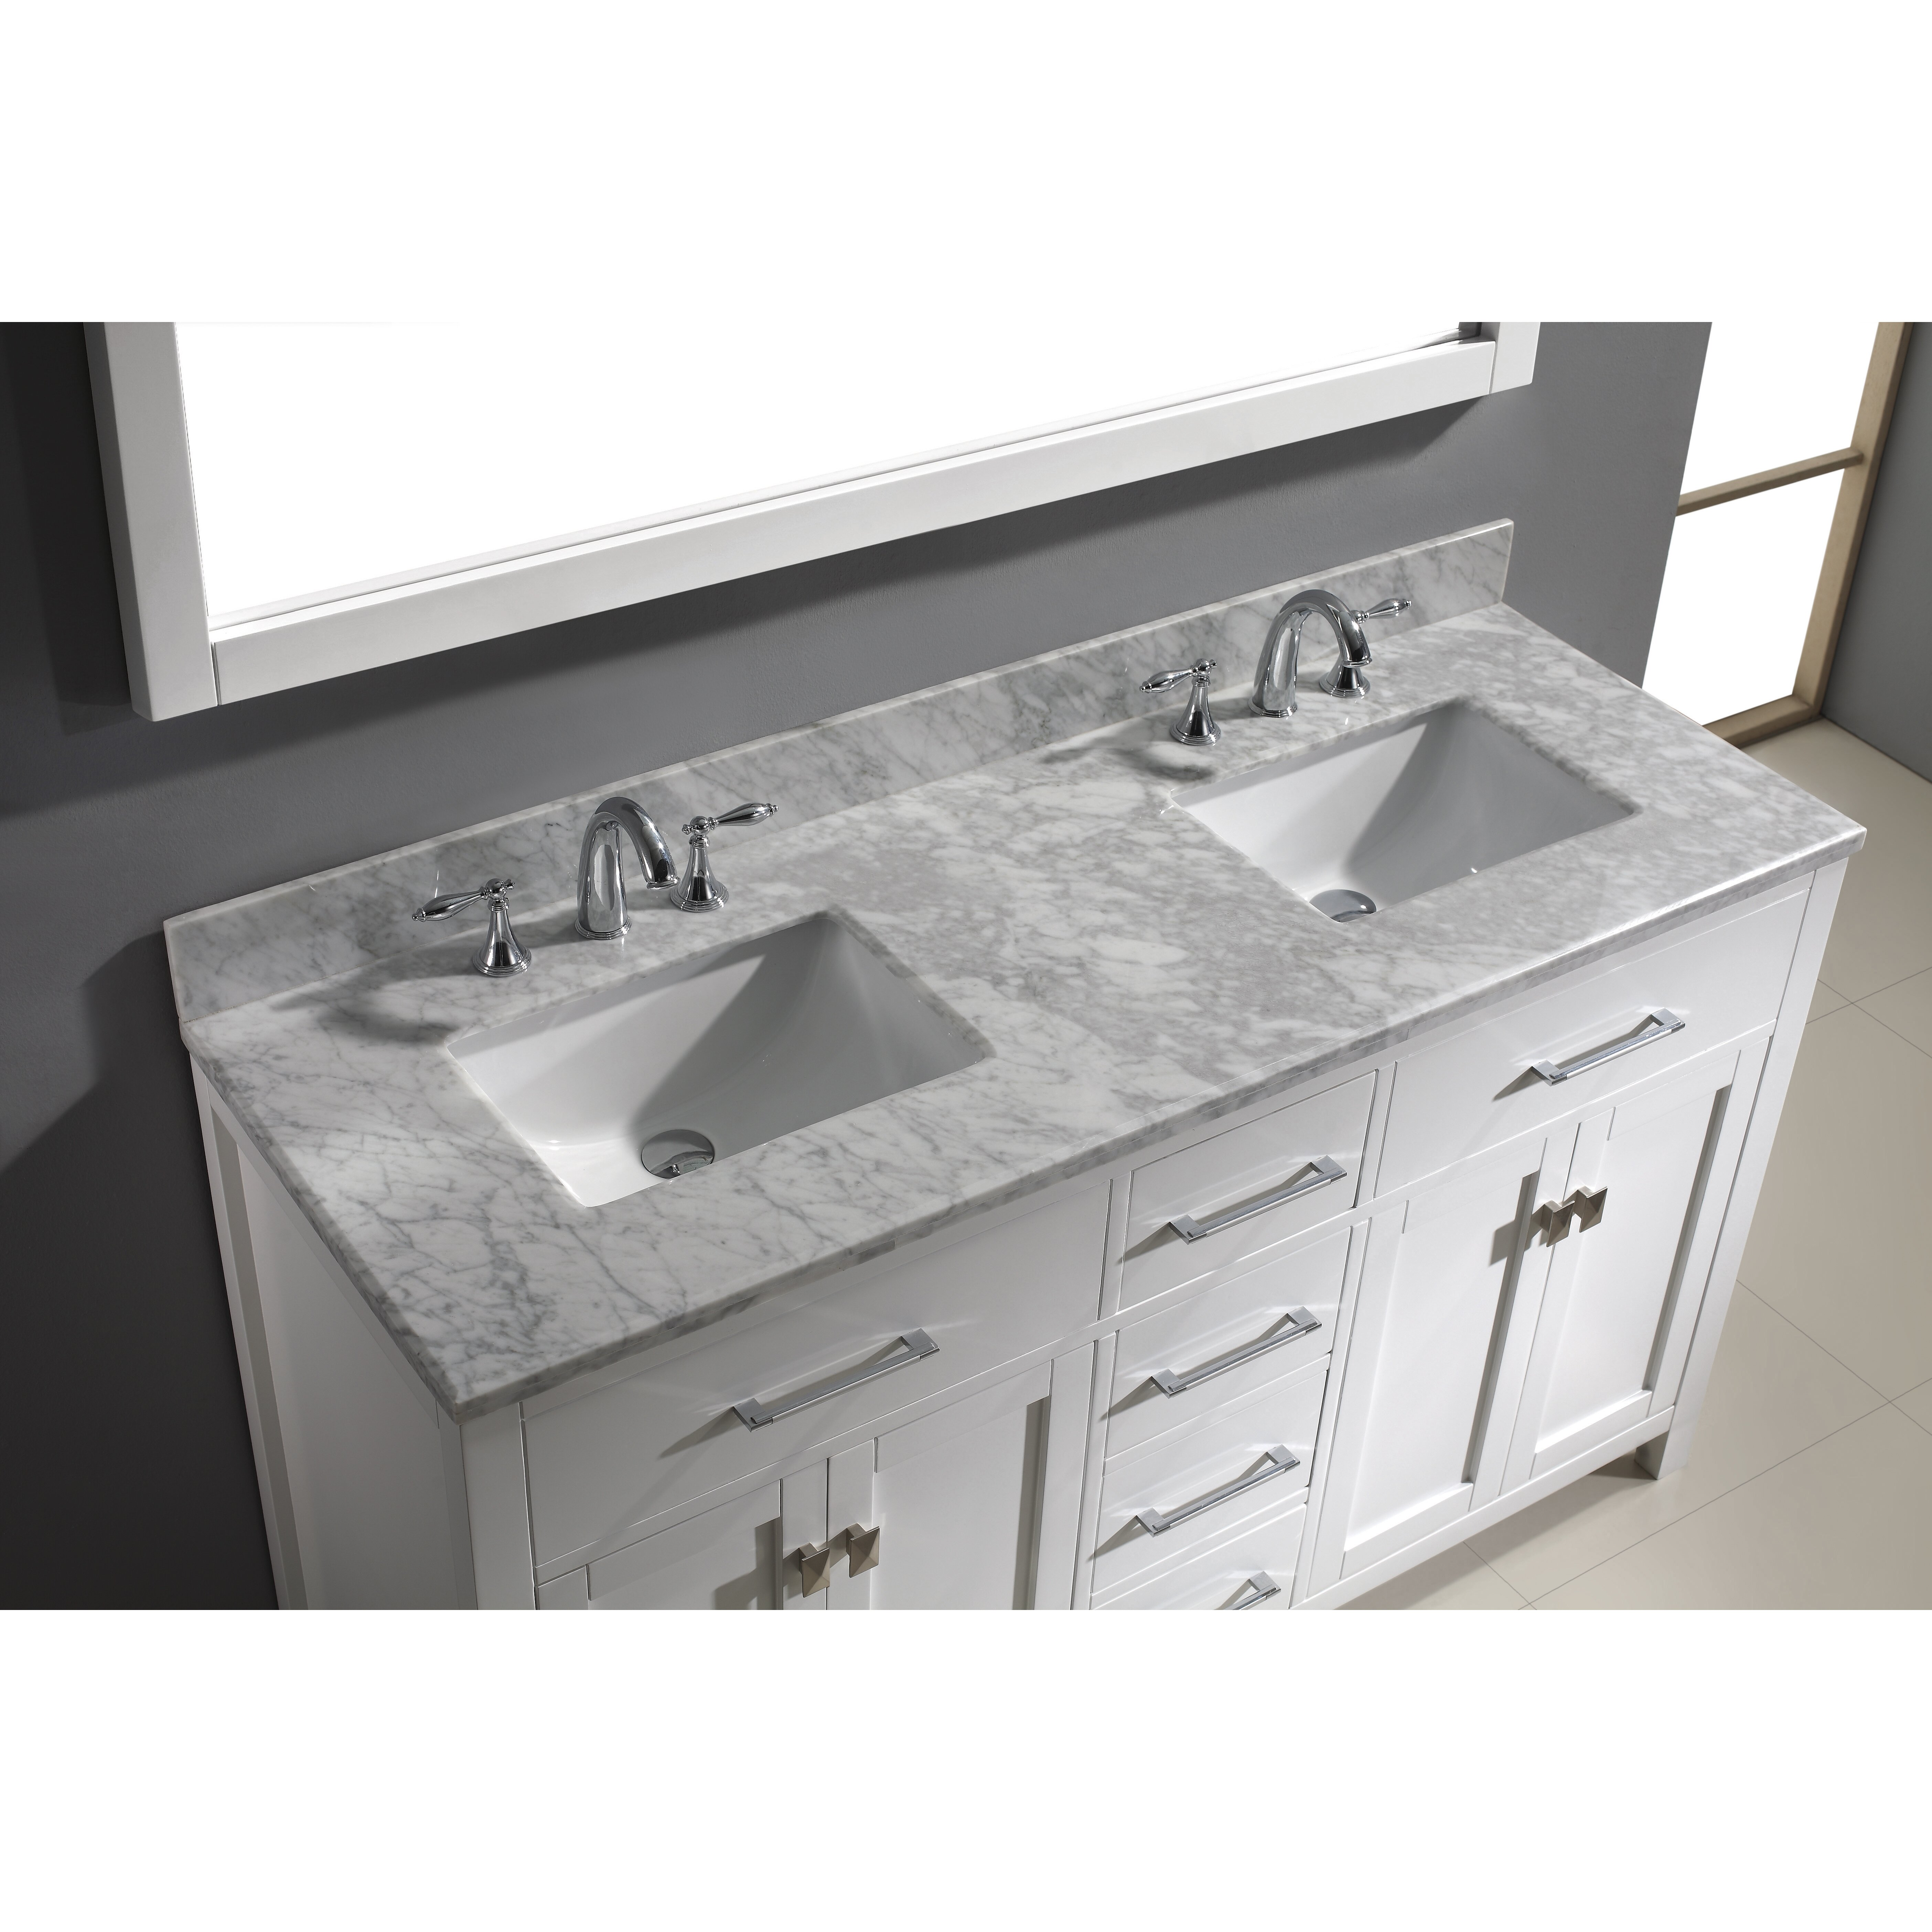 Virtu caroline 60 double bathroom vanity set with carrara white stone top and mirror reviews for Caroline 60 inch double sink bathroom vanity set